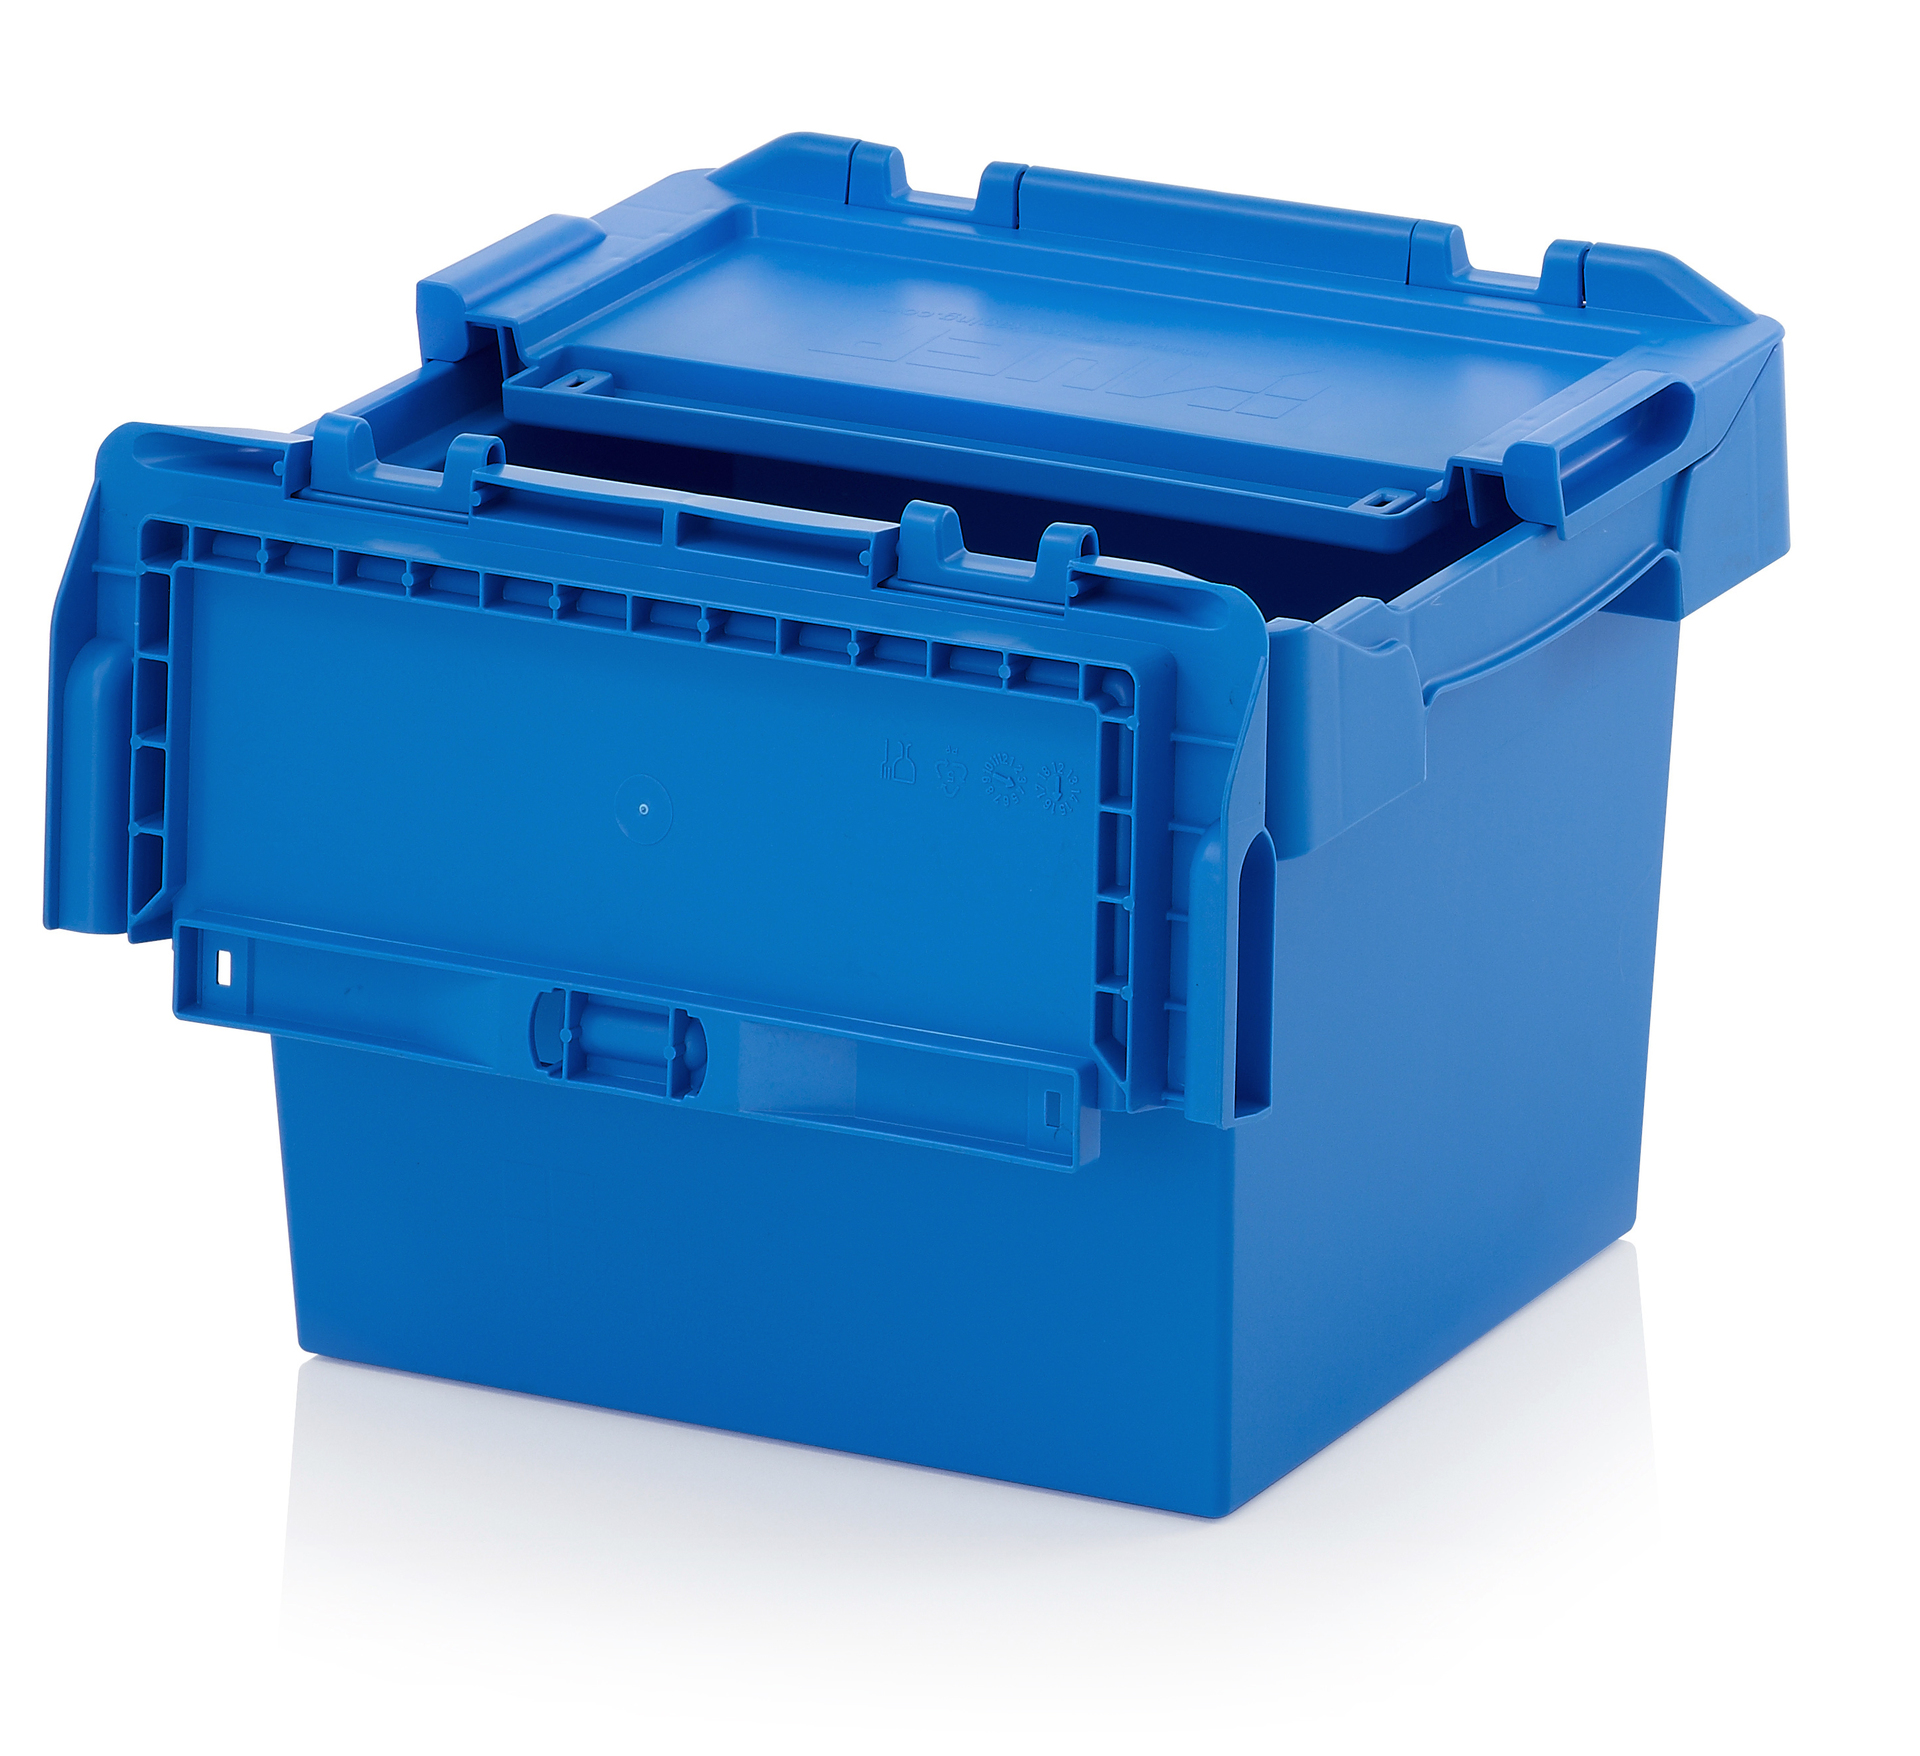 RC4270L_2 Reusable Containers - Plastic Mouldings Northern